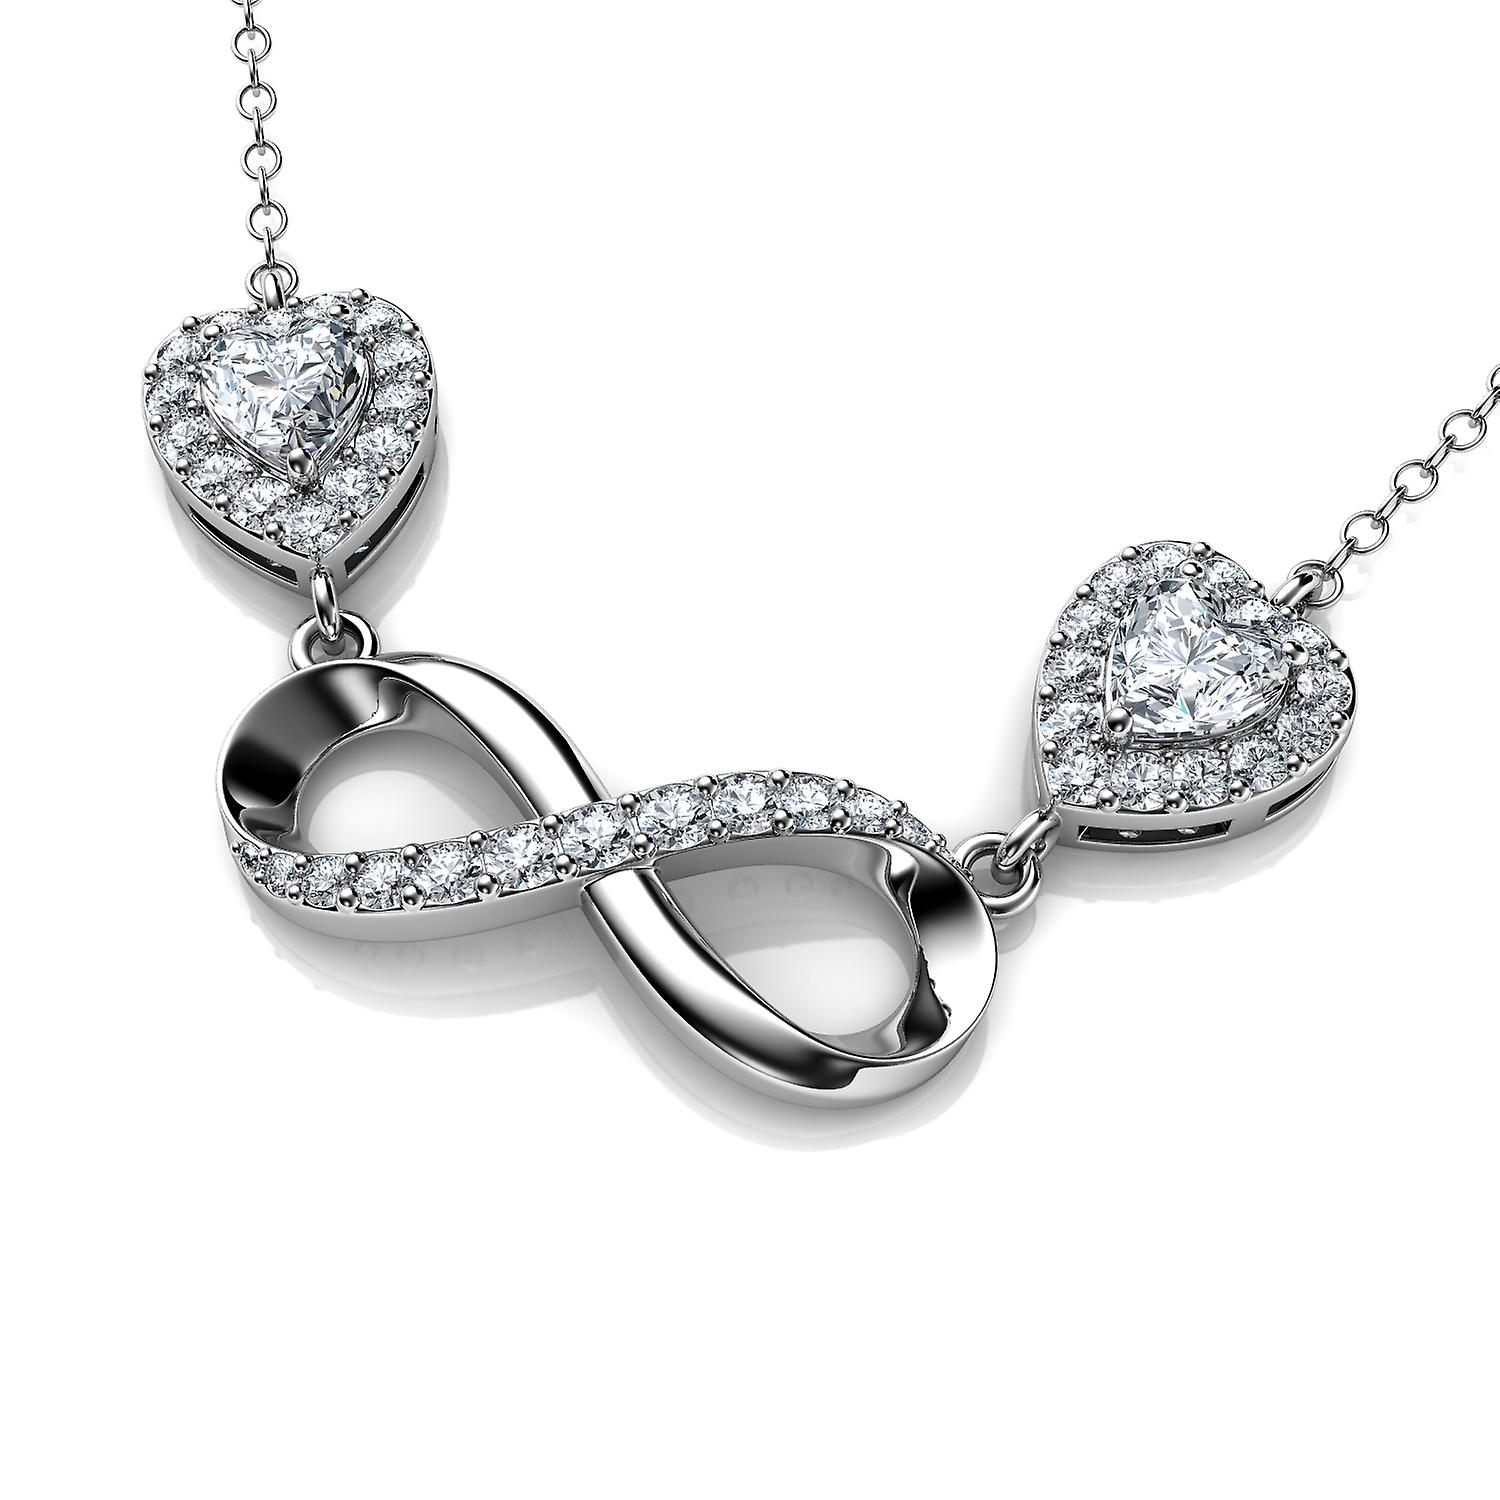 Infinity pendant - 925 sterling silver necklace hearts cz crystals